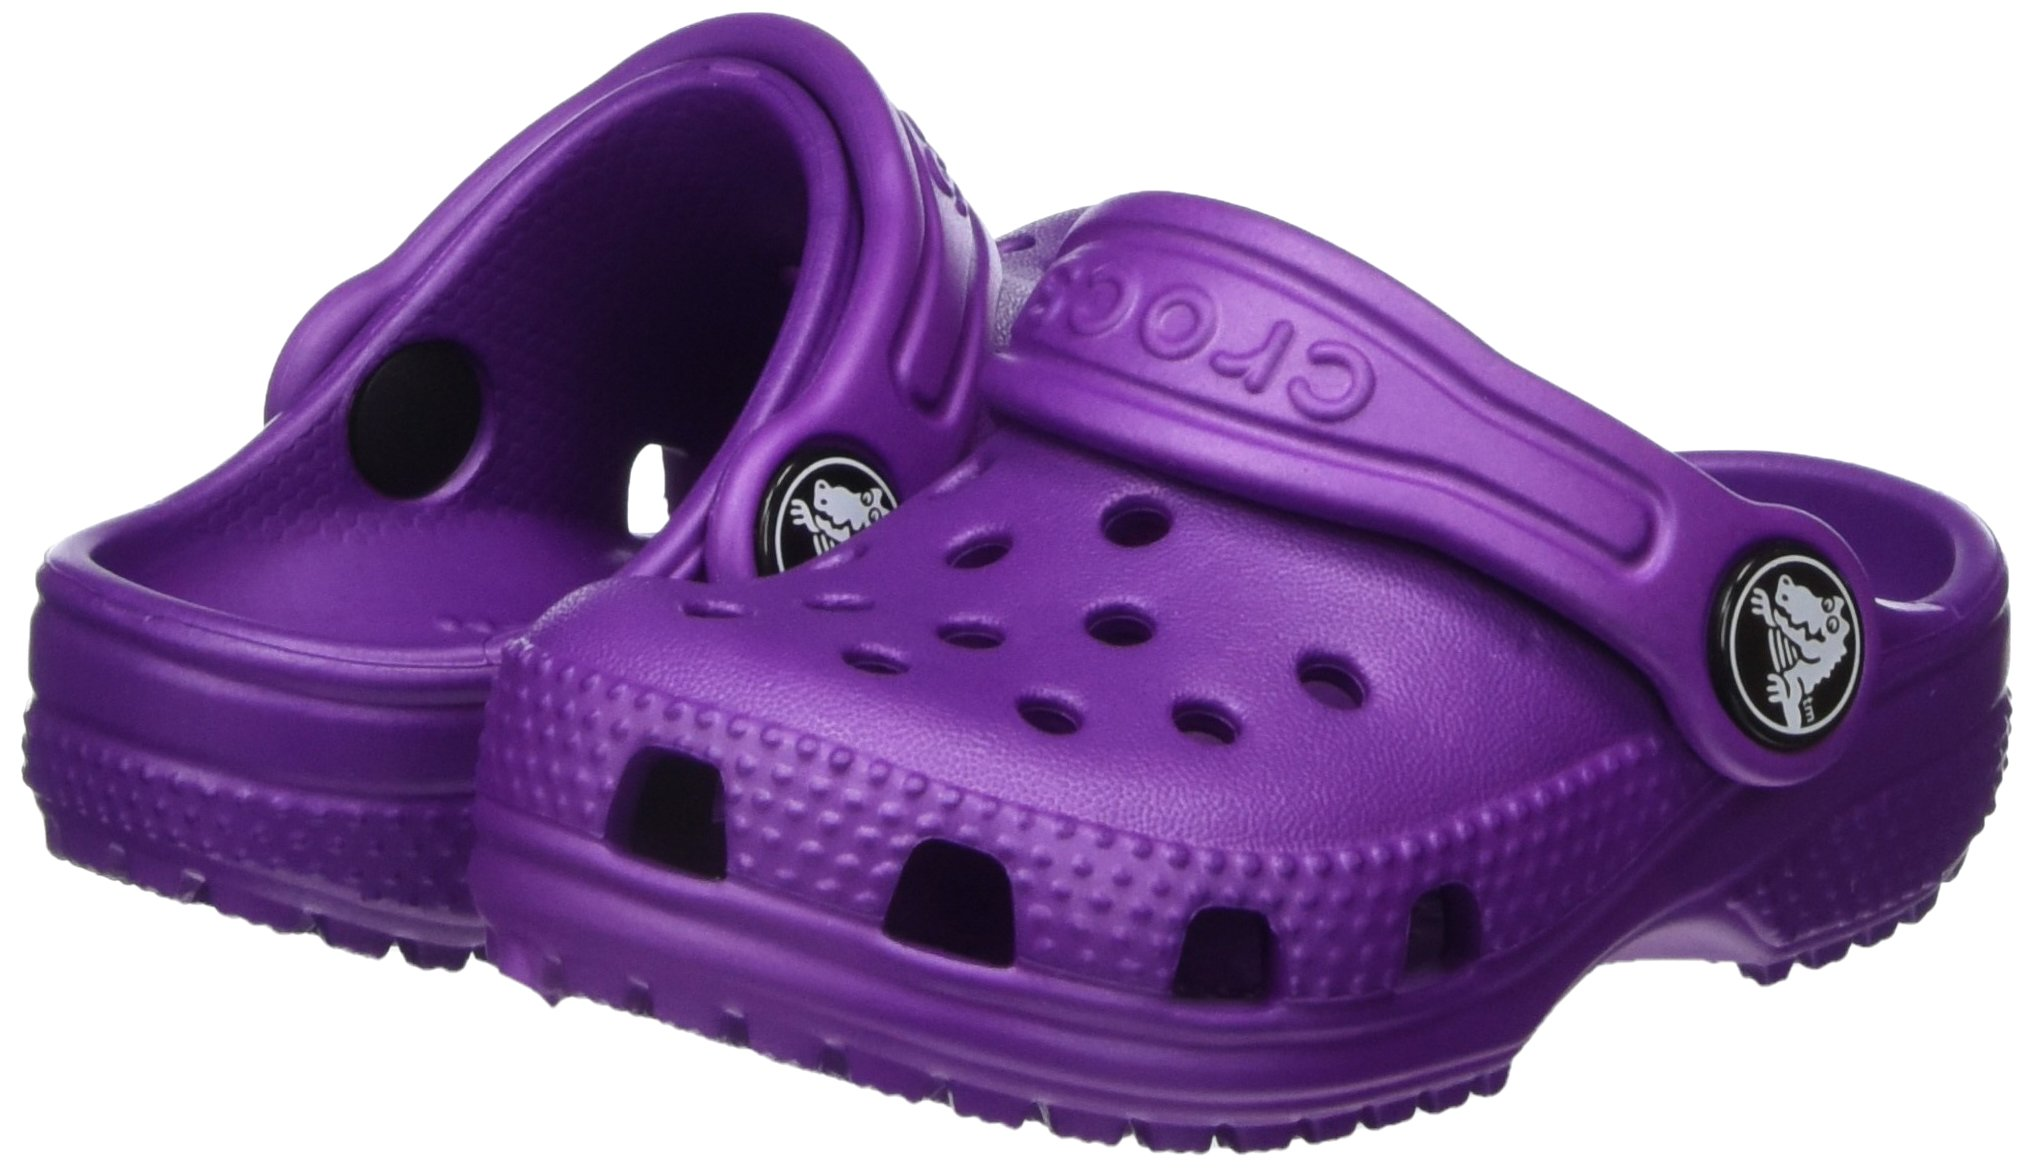 Crocs Kid's Classic Clog K Shoe, Amethyst, 7 M US Toddler by Crocs (Image #6)